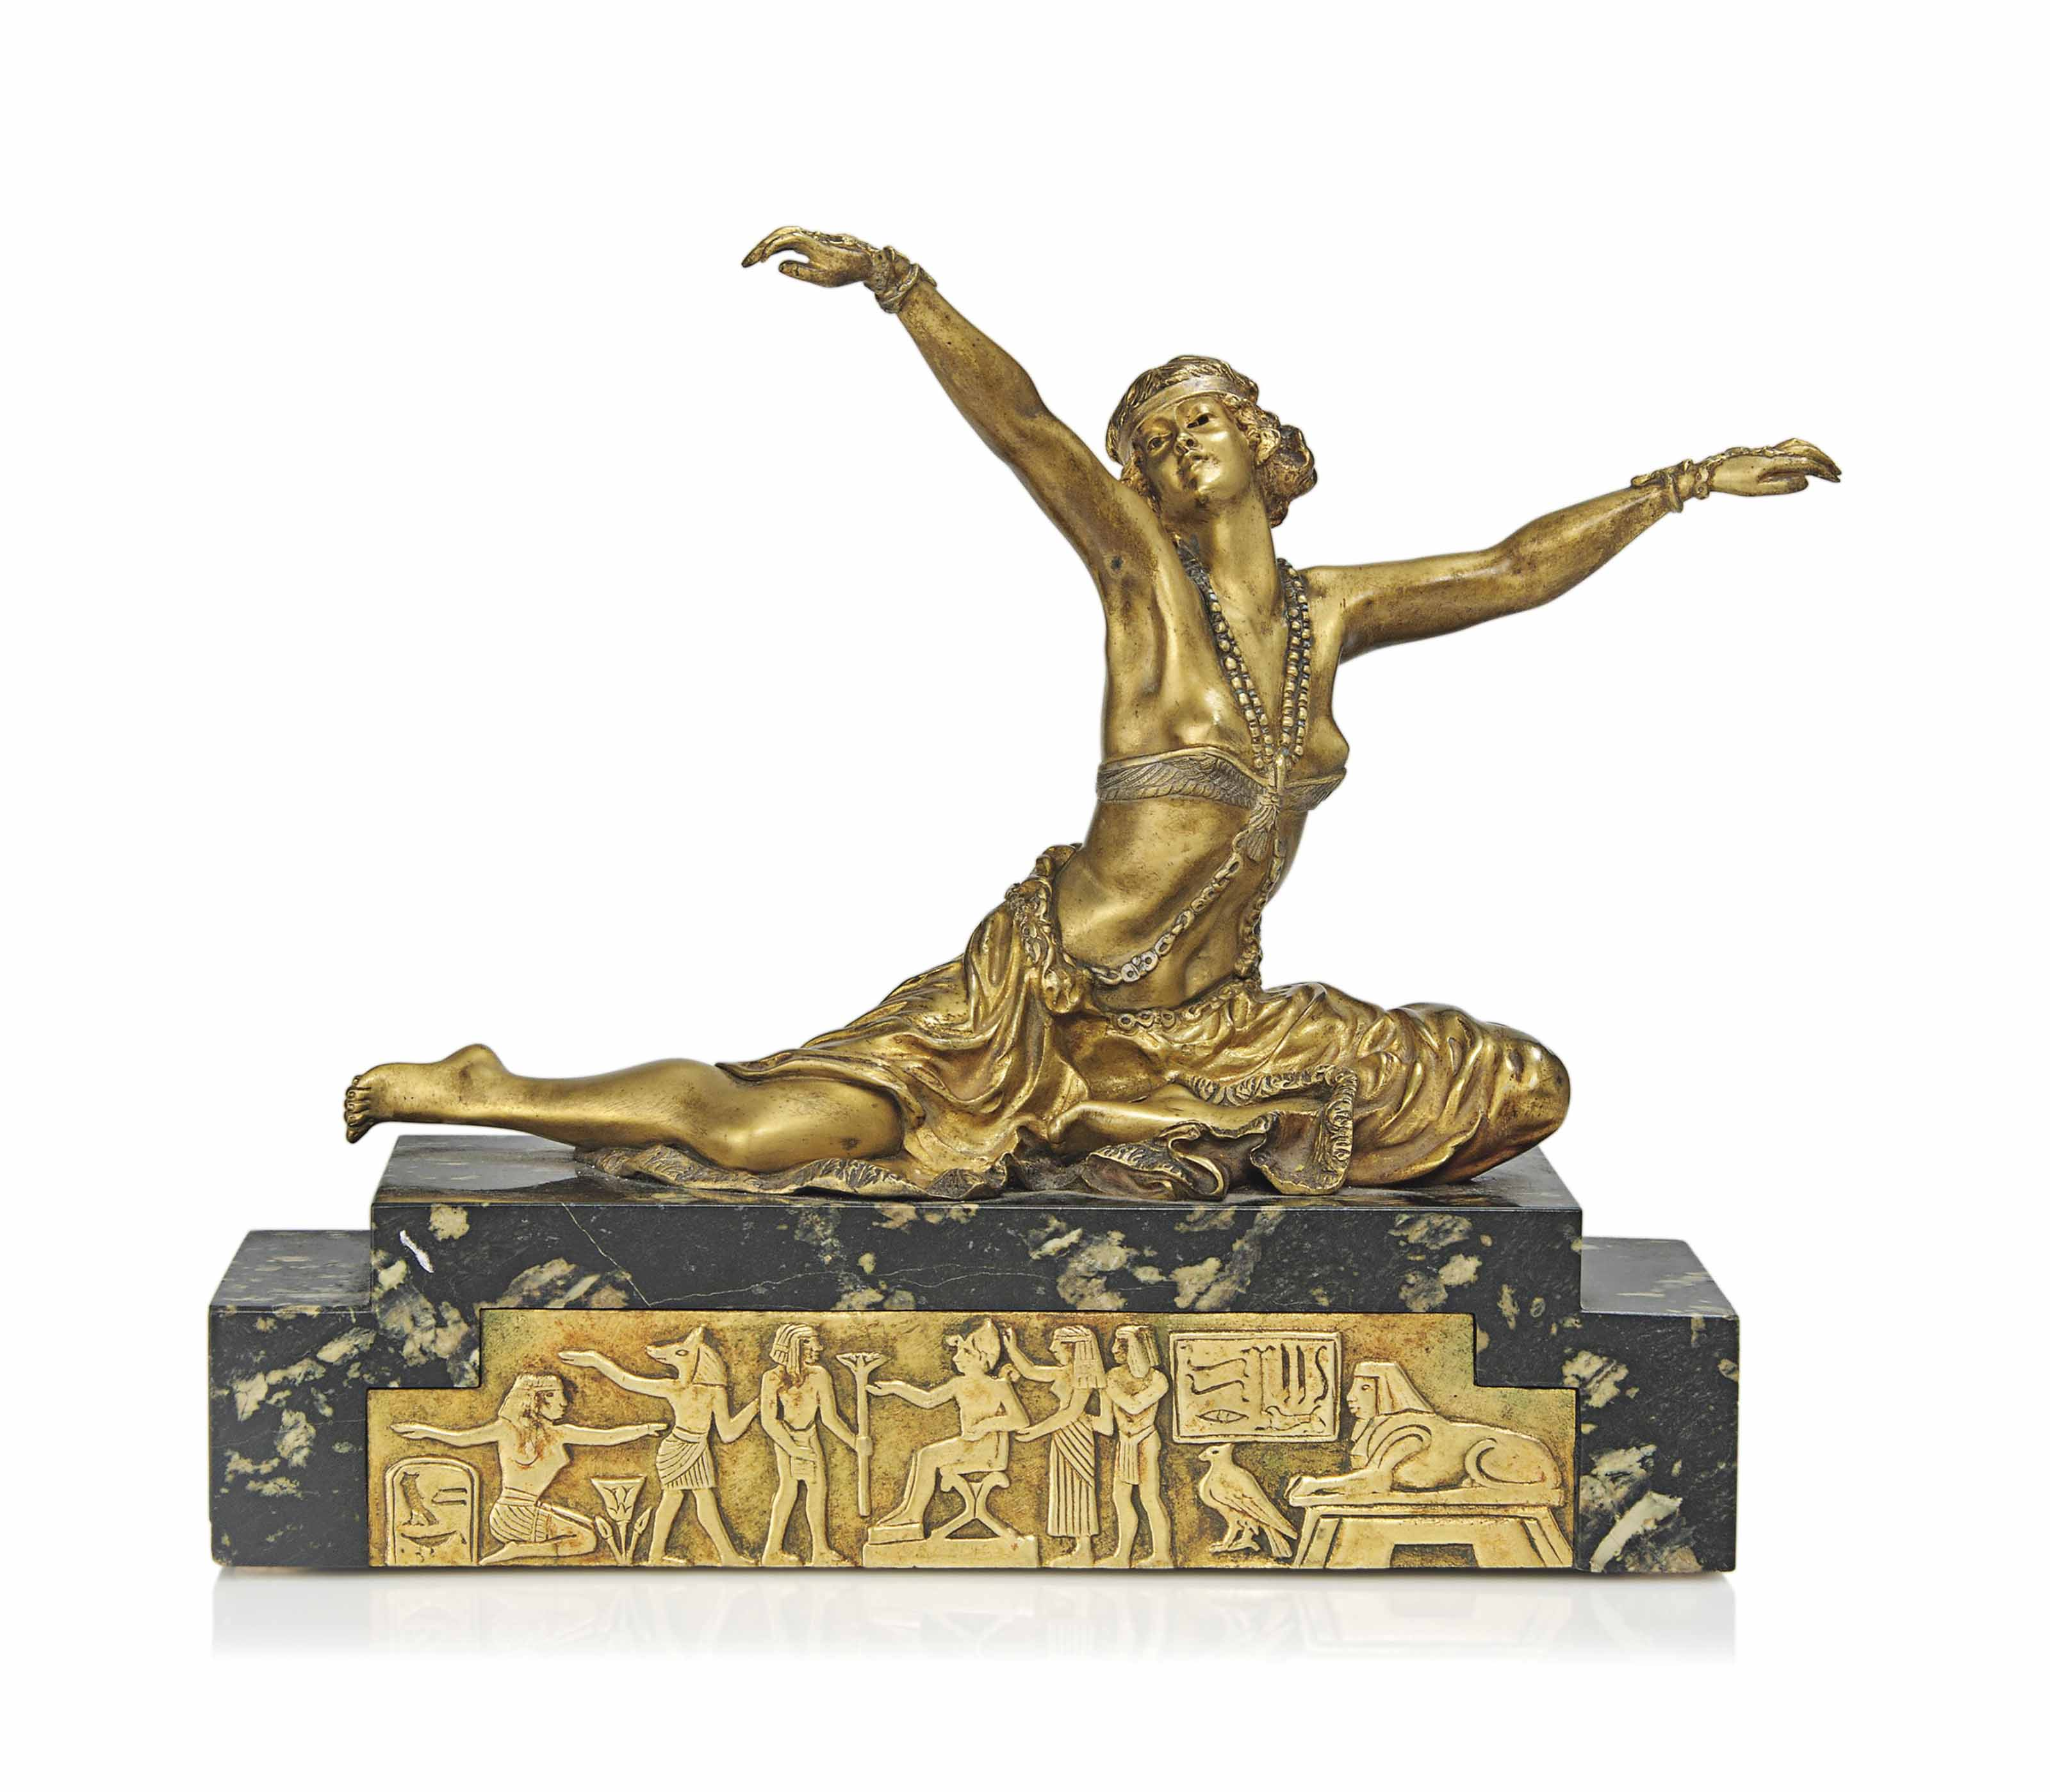 A CLAIRE-JEANNE-ROBERTE COLINET (1880-1950) GILT AND COLD-PAINTED BRONZE